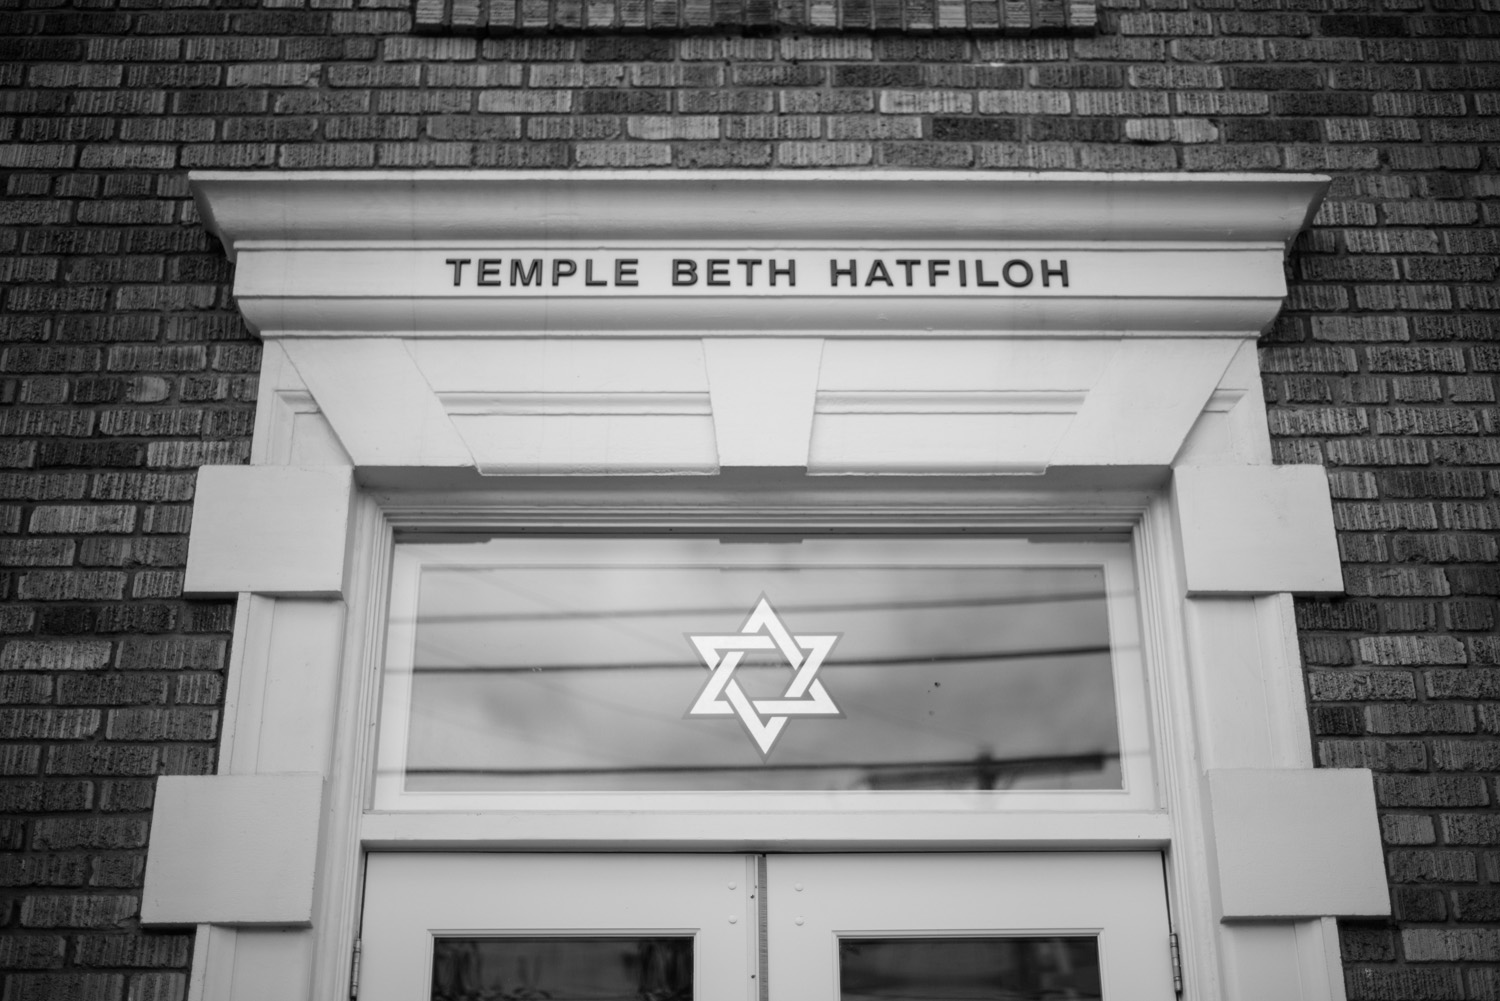 Reflections Of Jewish Identity